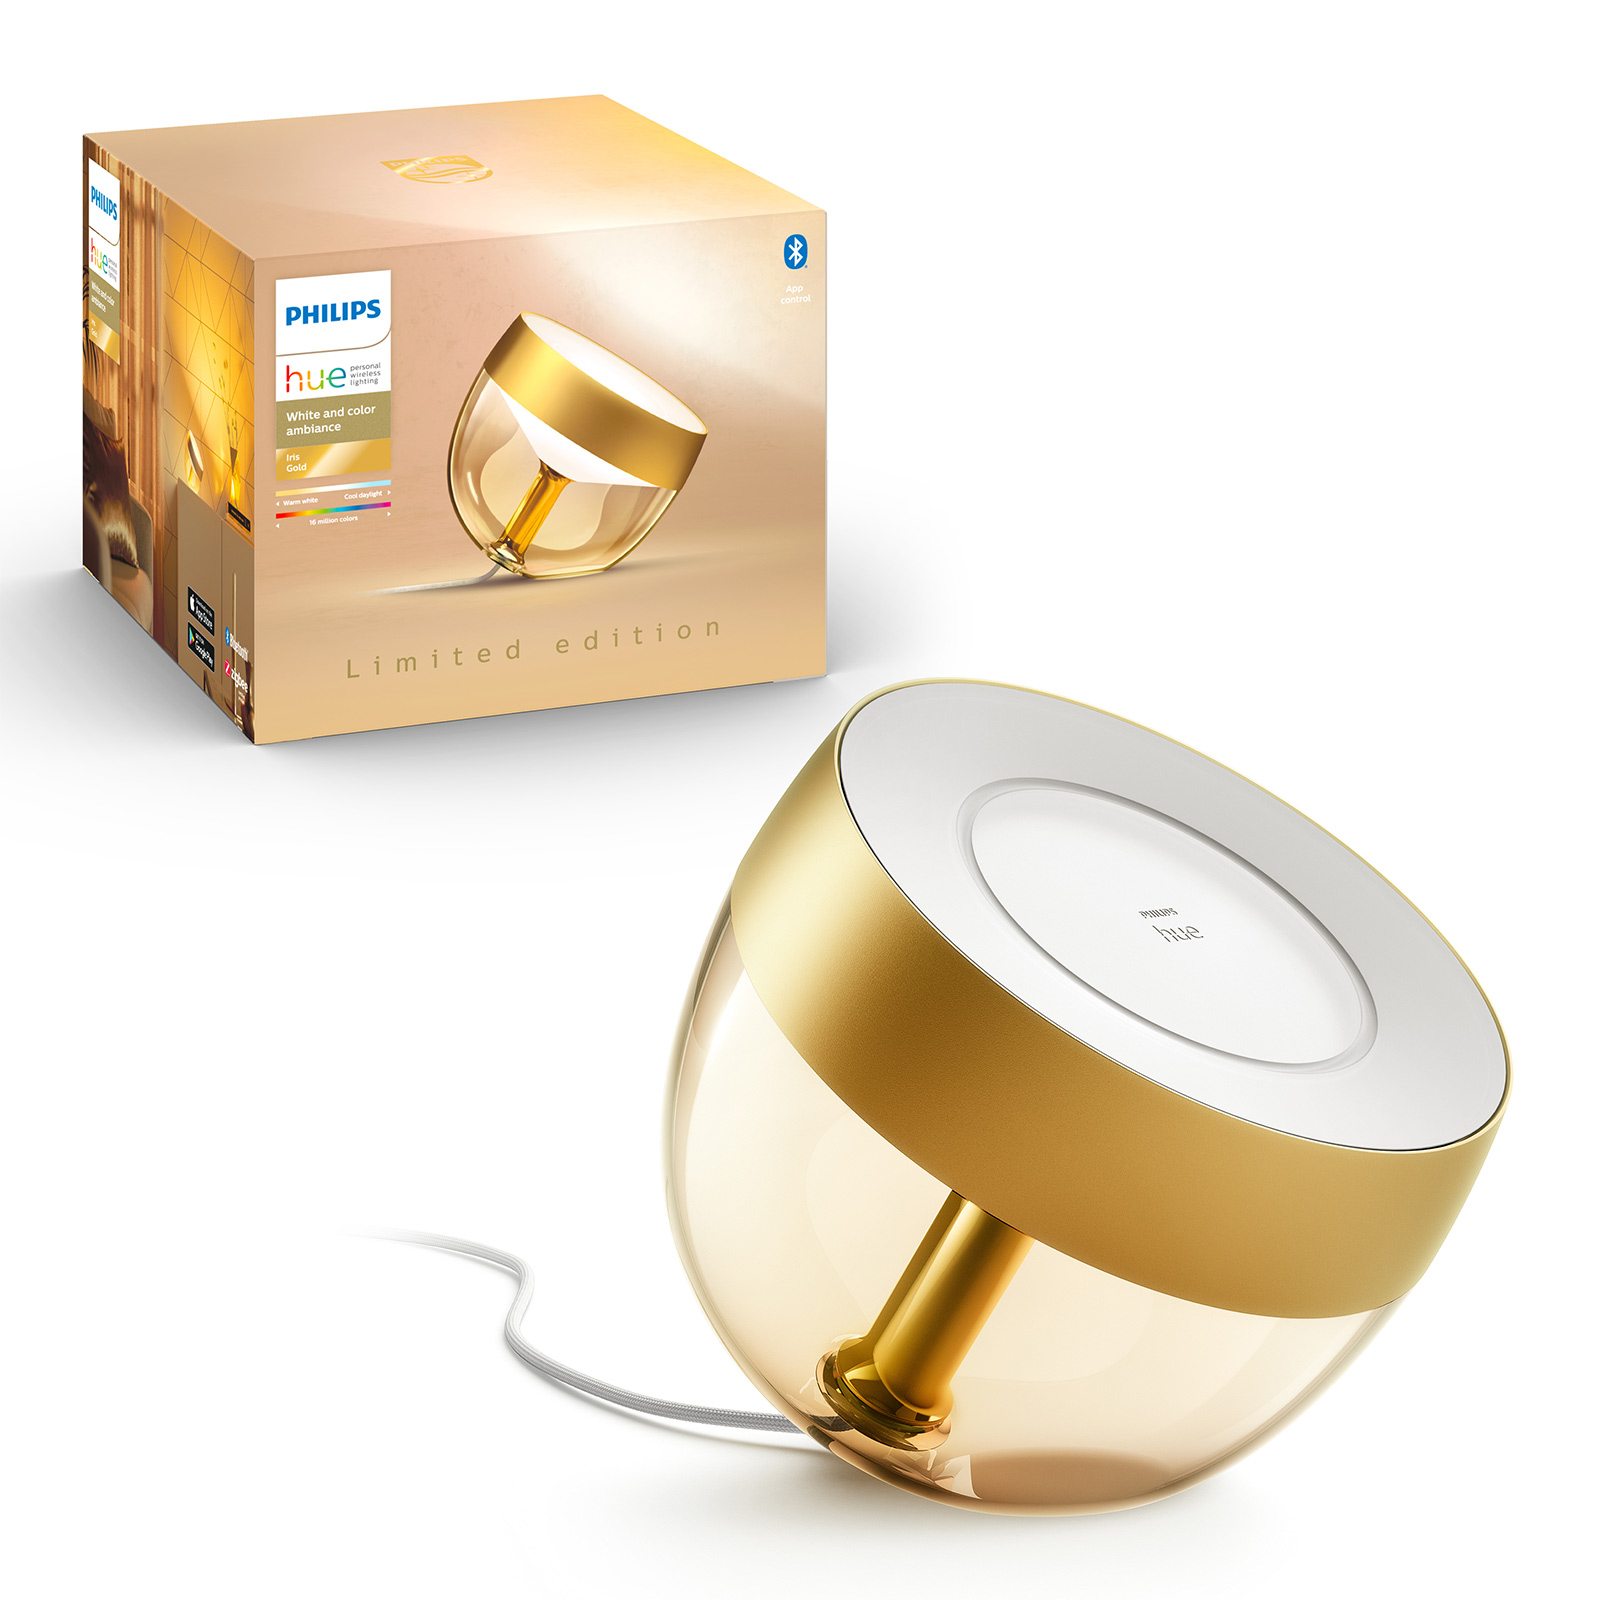 Philips Hue Iris Limited Edition, WACA, gold